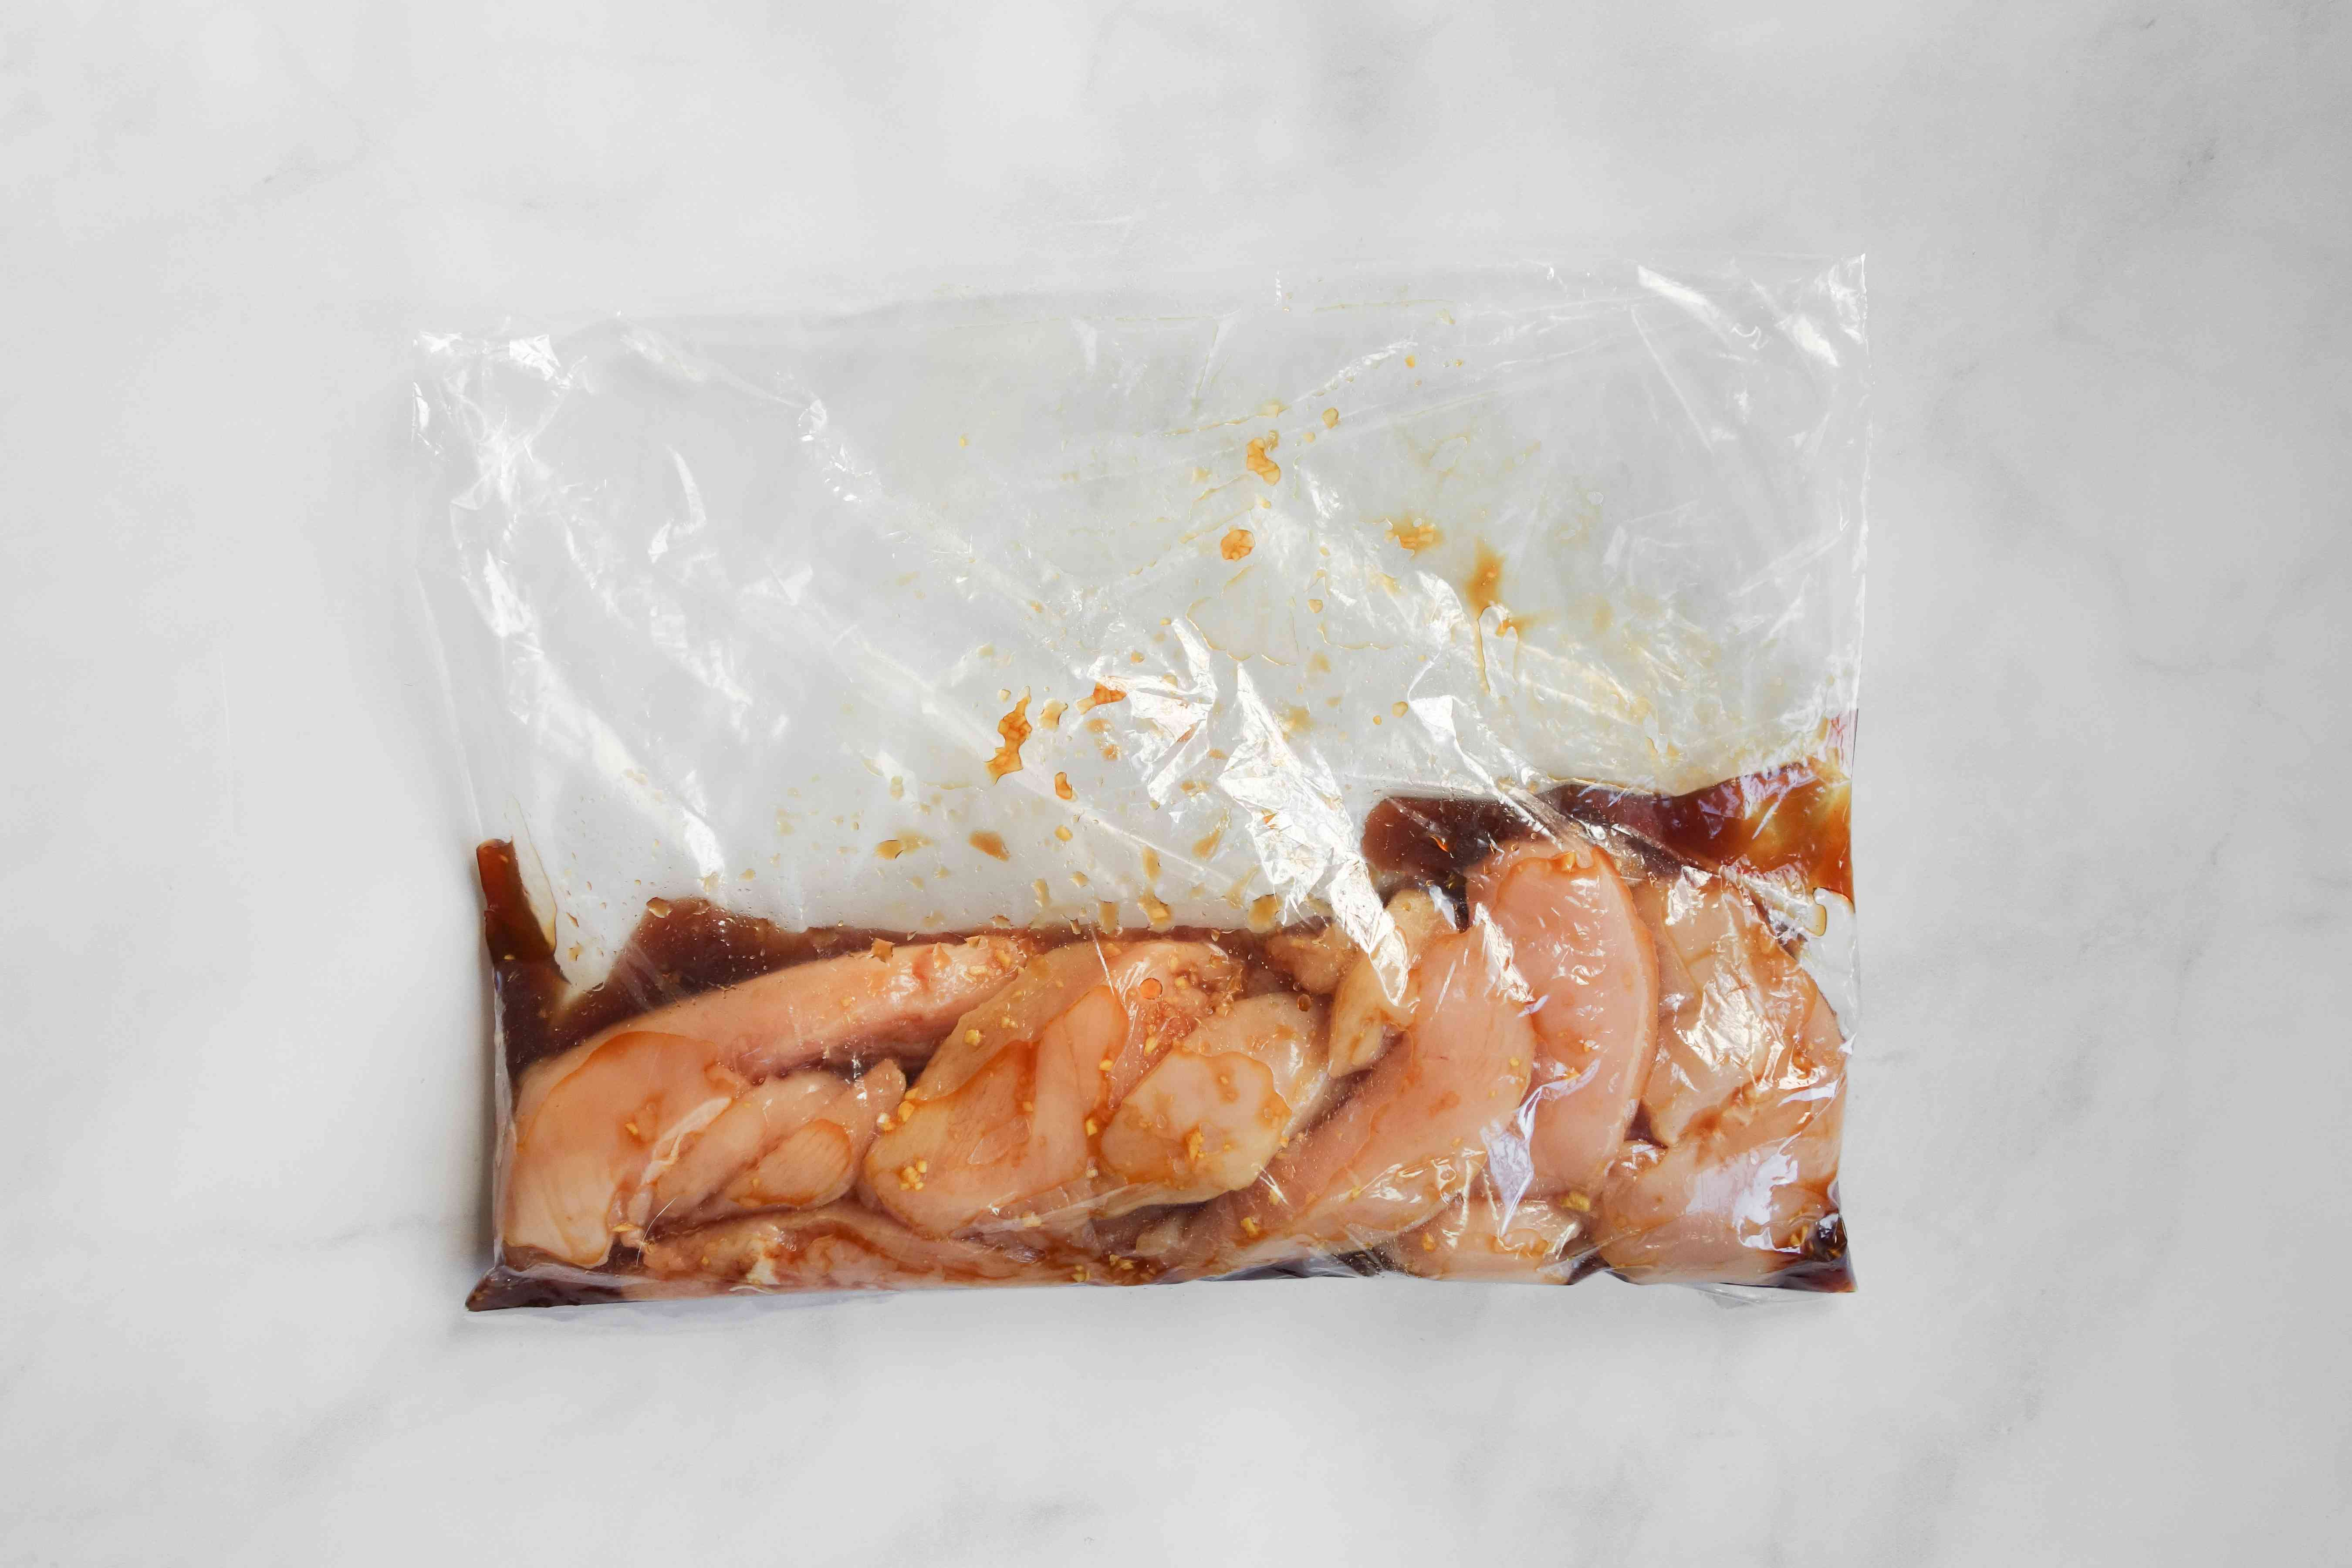 chicken and marinade in a plastic bag